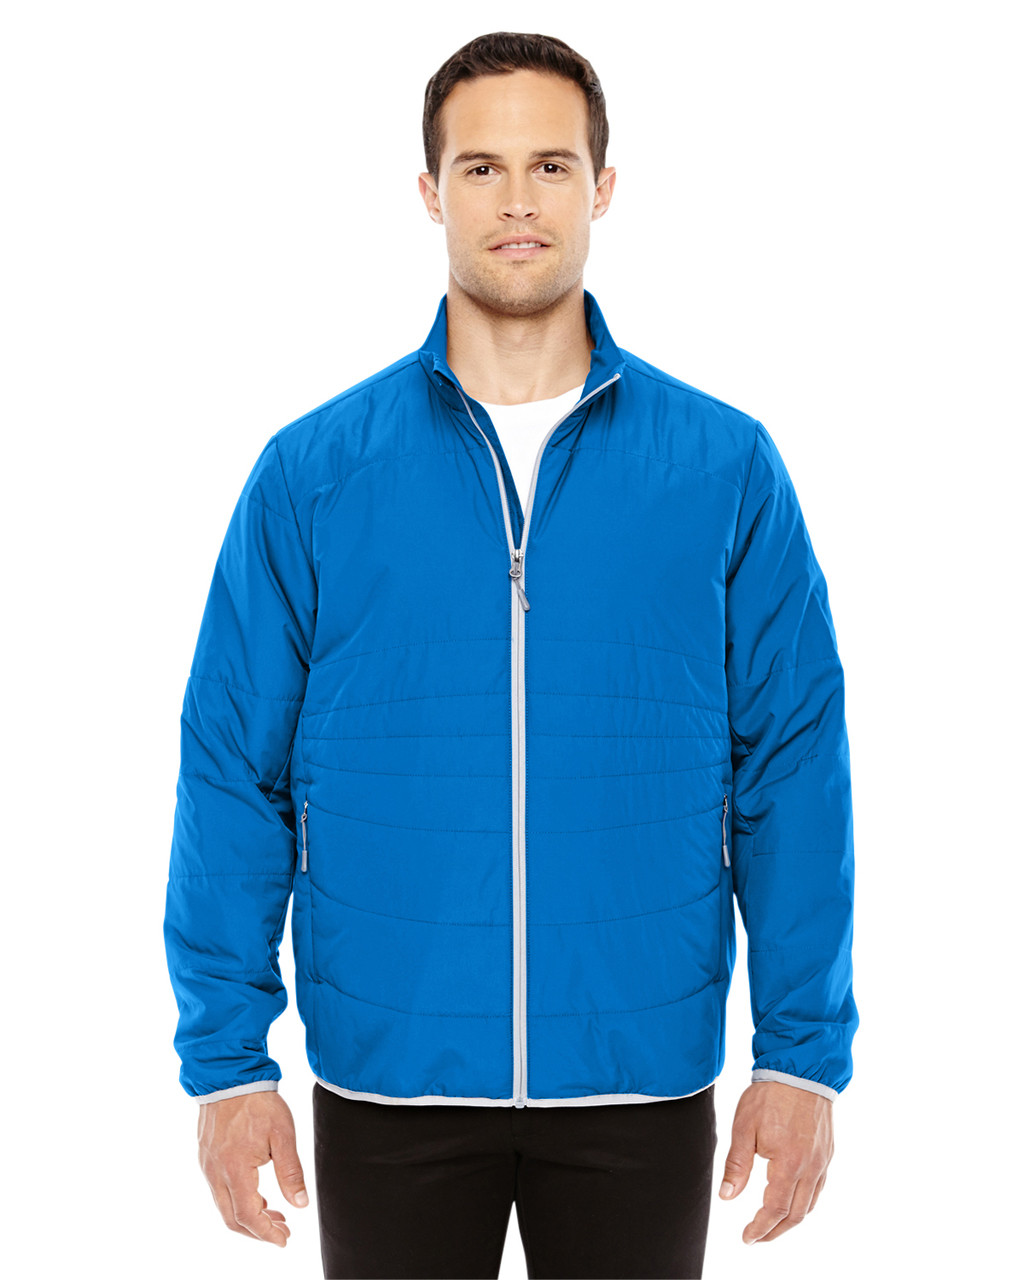 Nau Blu/Plt - 88231 North End Men's Resolve Interactive Insulated Packable Jacket | Blankclothing.ca